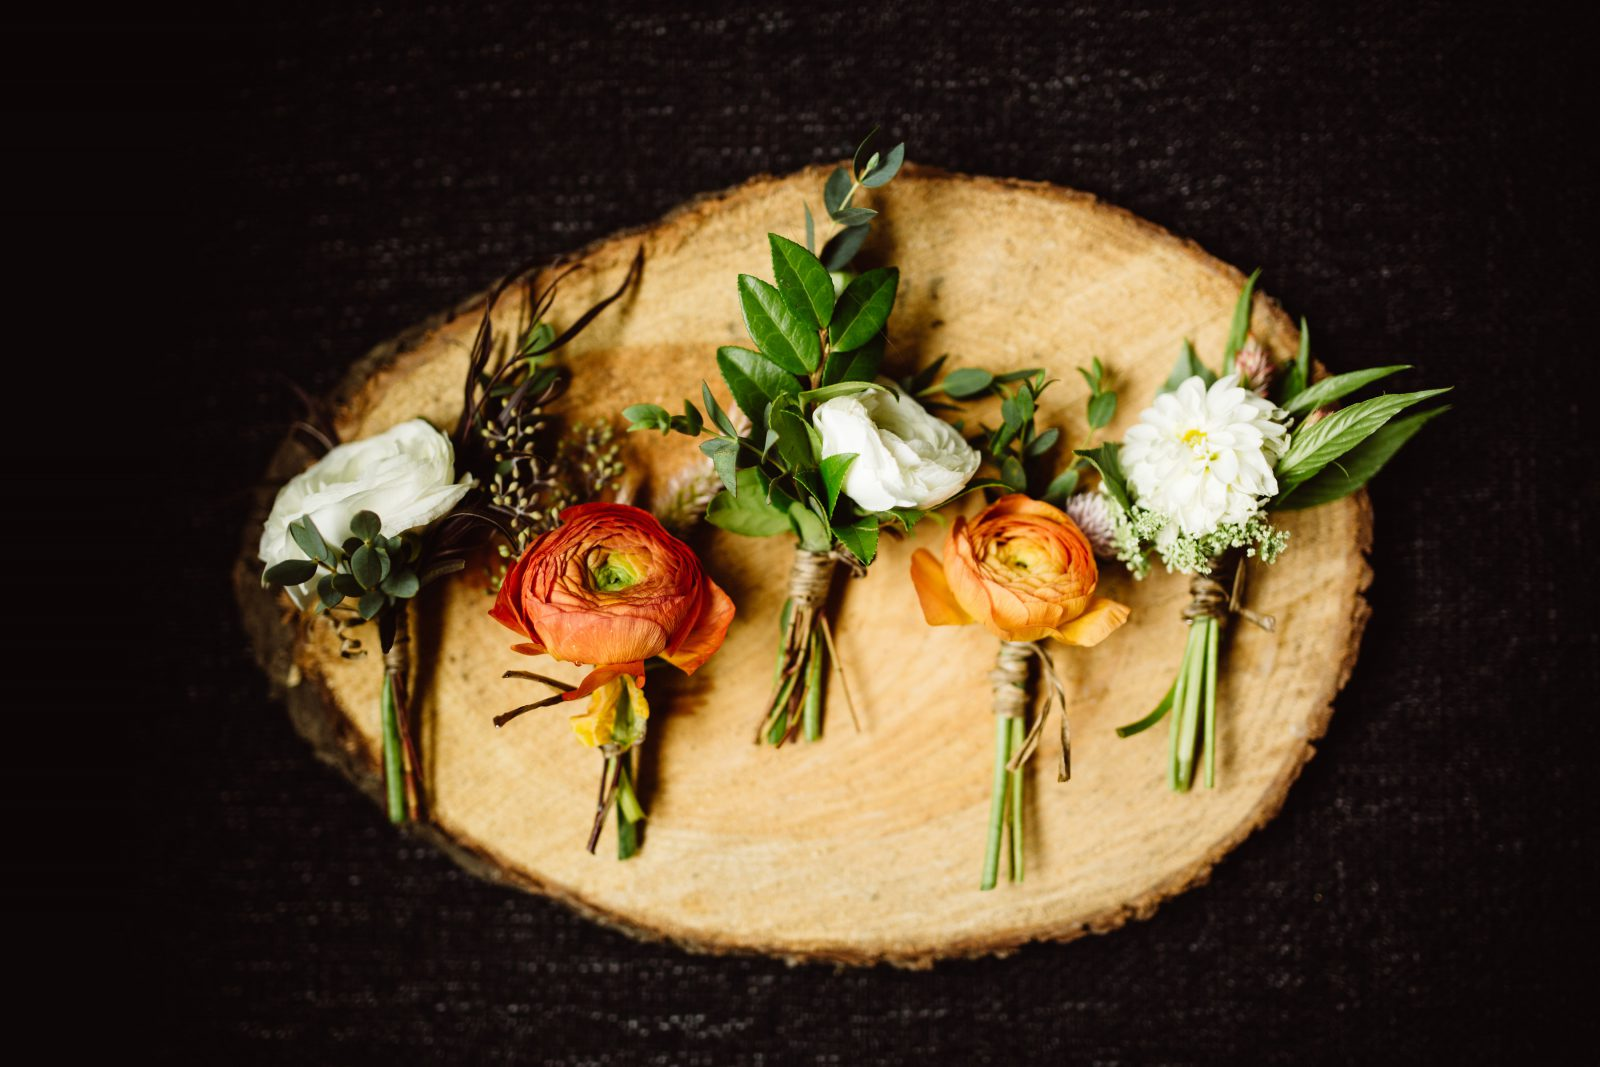 Fall ranunculus boutonnieres by Fresh Designs Florist at Ridgeland Mansion Philadelphia Wedding. Photo by Ali & Paul Co.